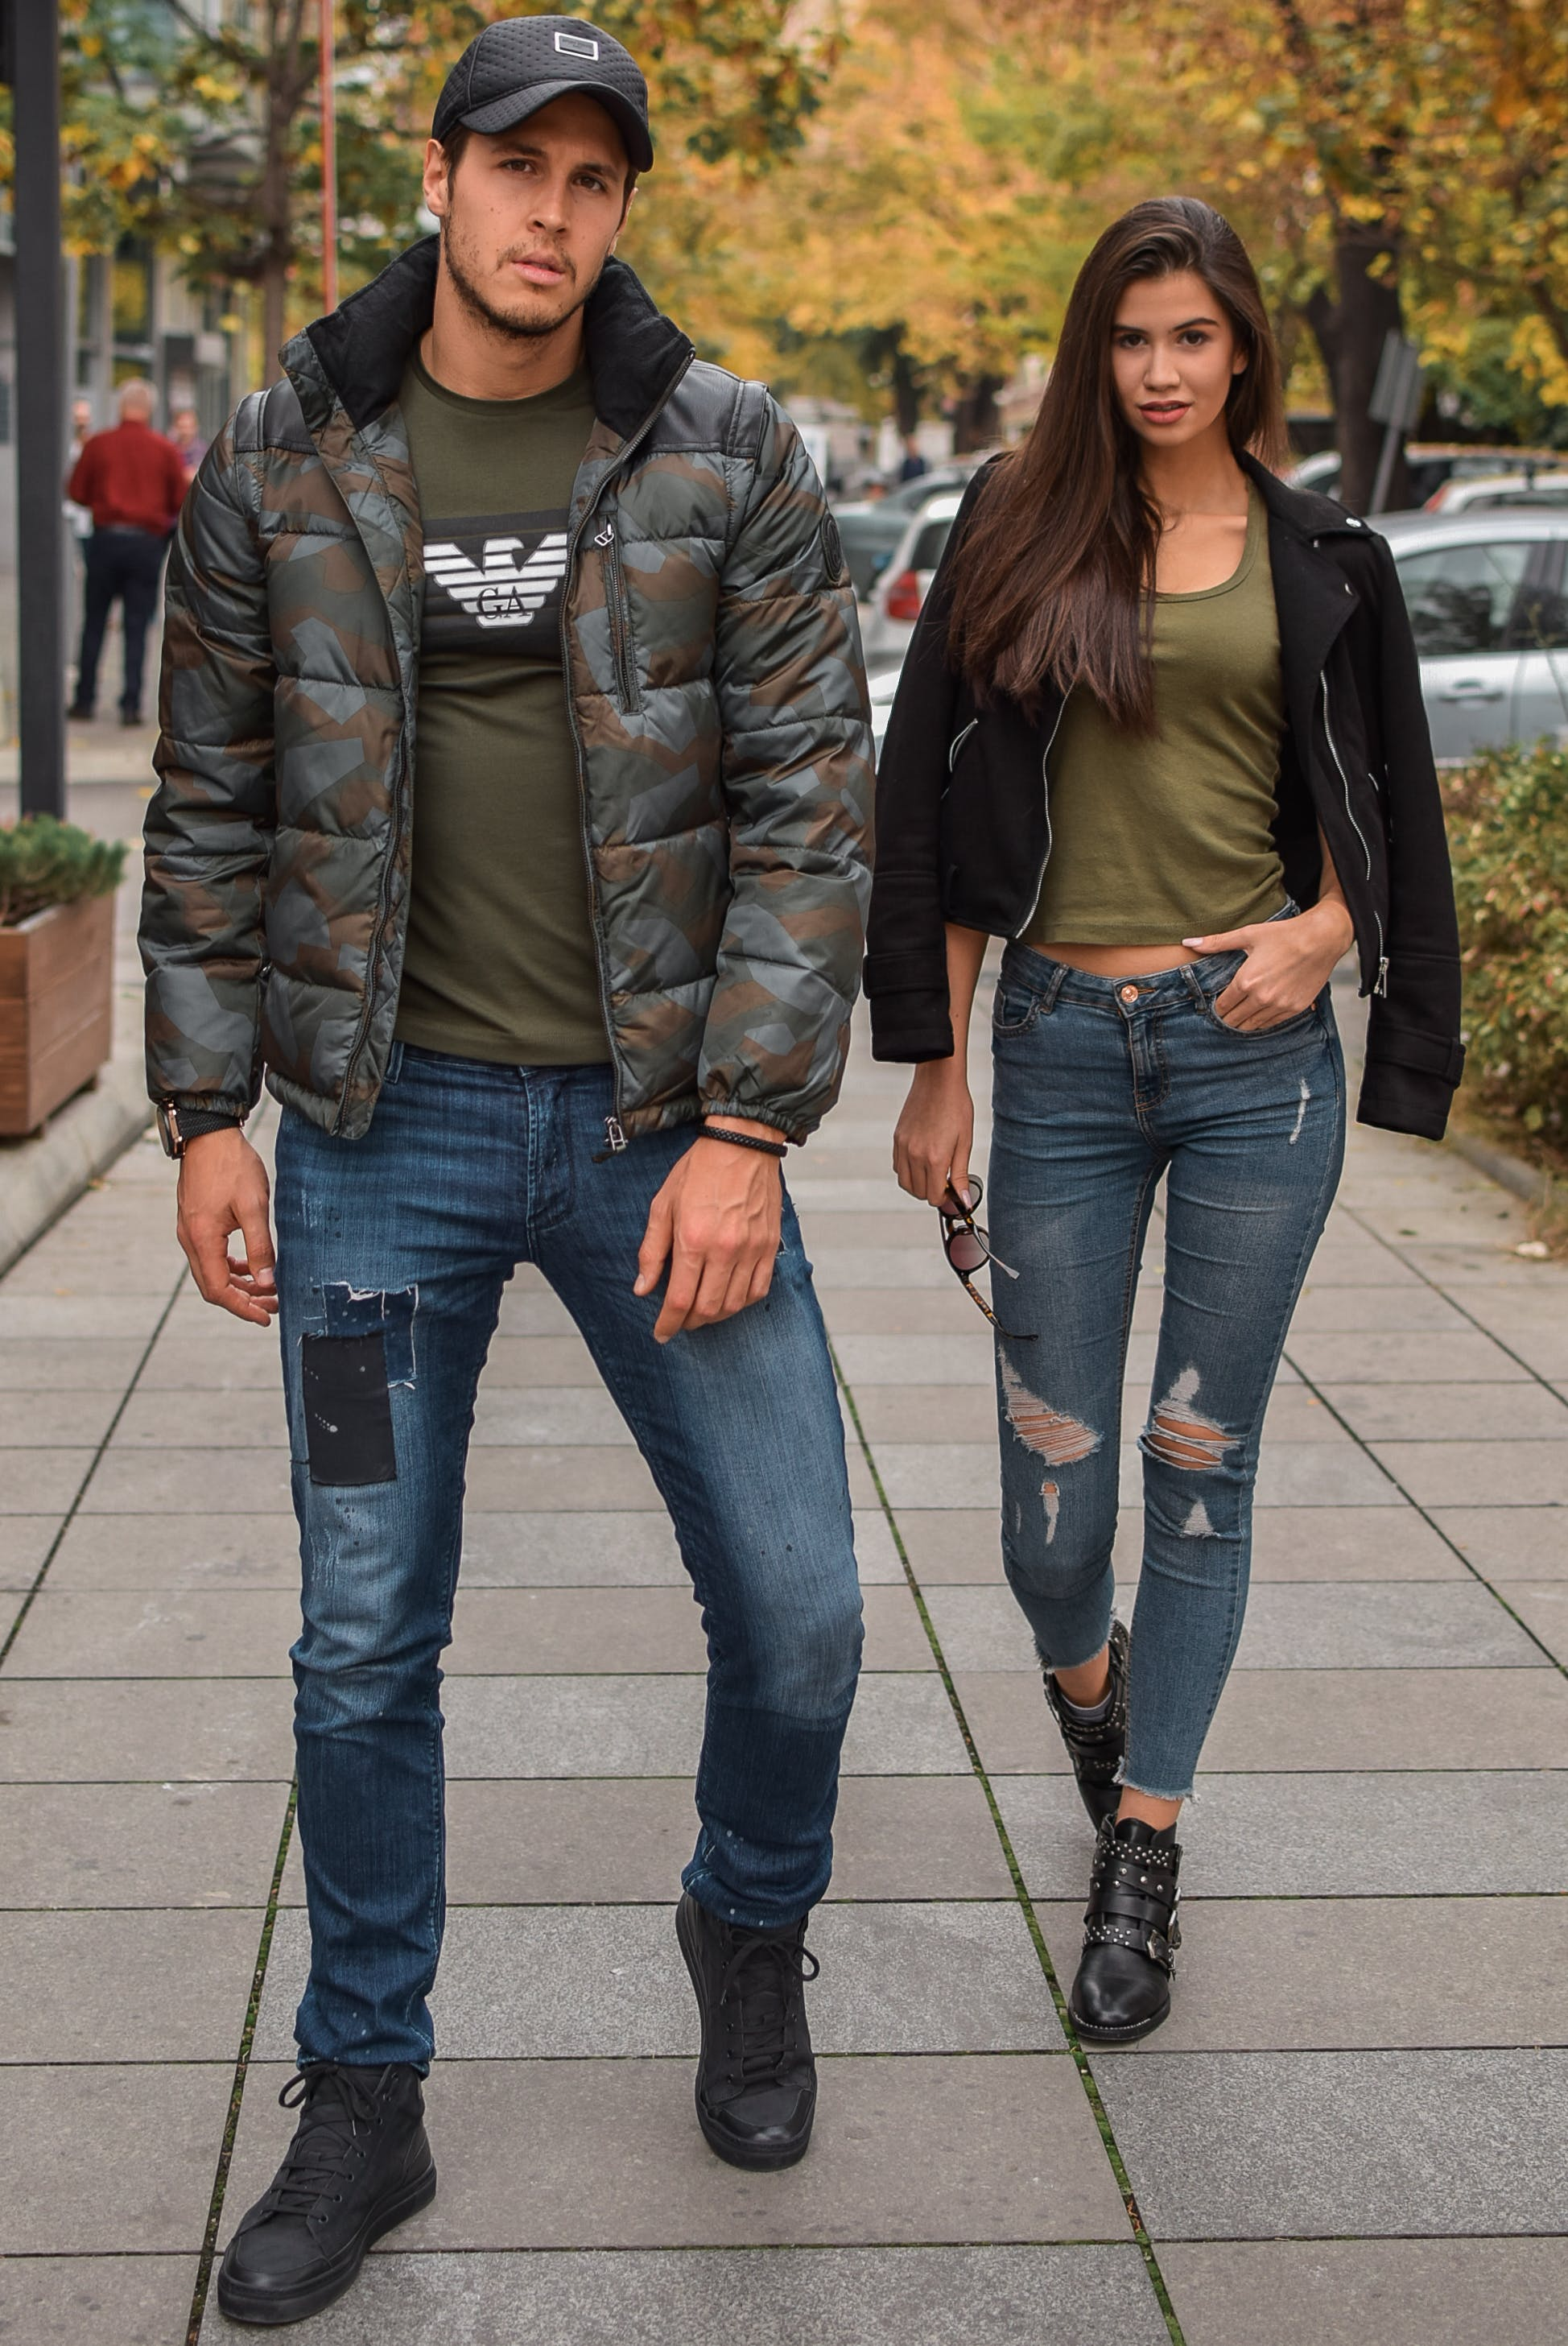 Photo Of Man And Woman Standing On Pavement